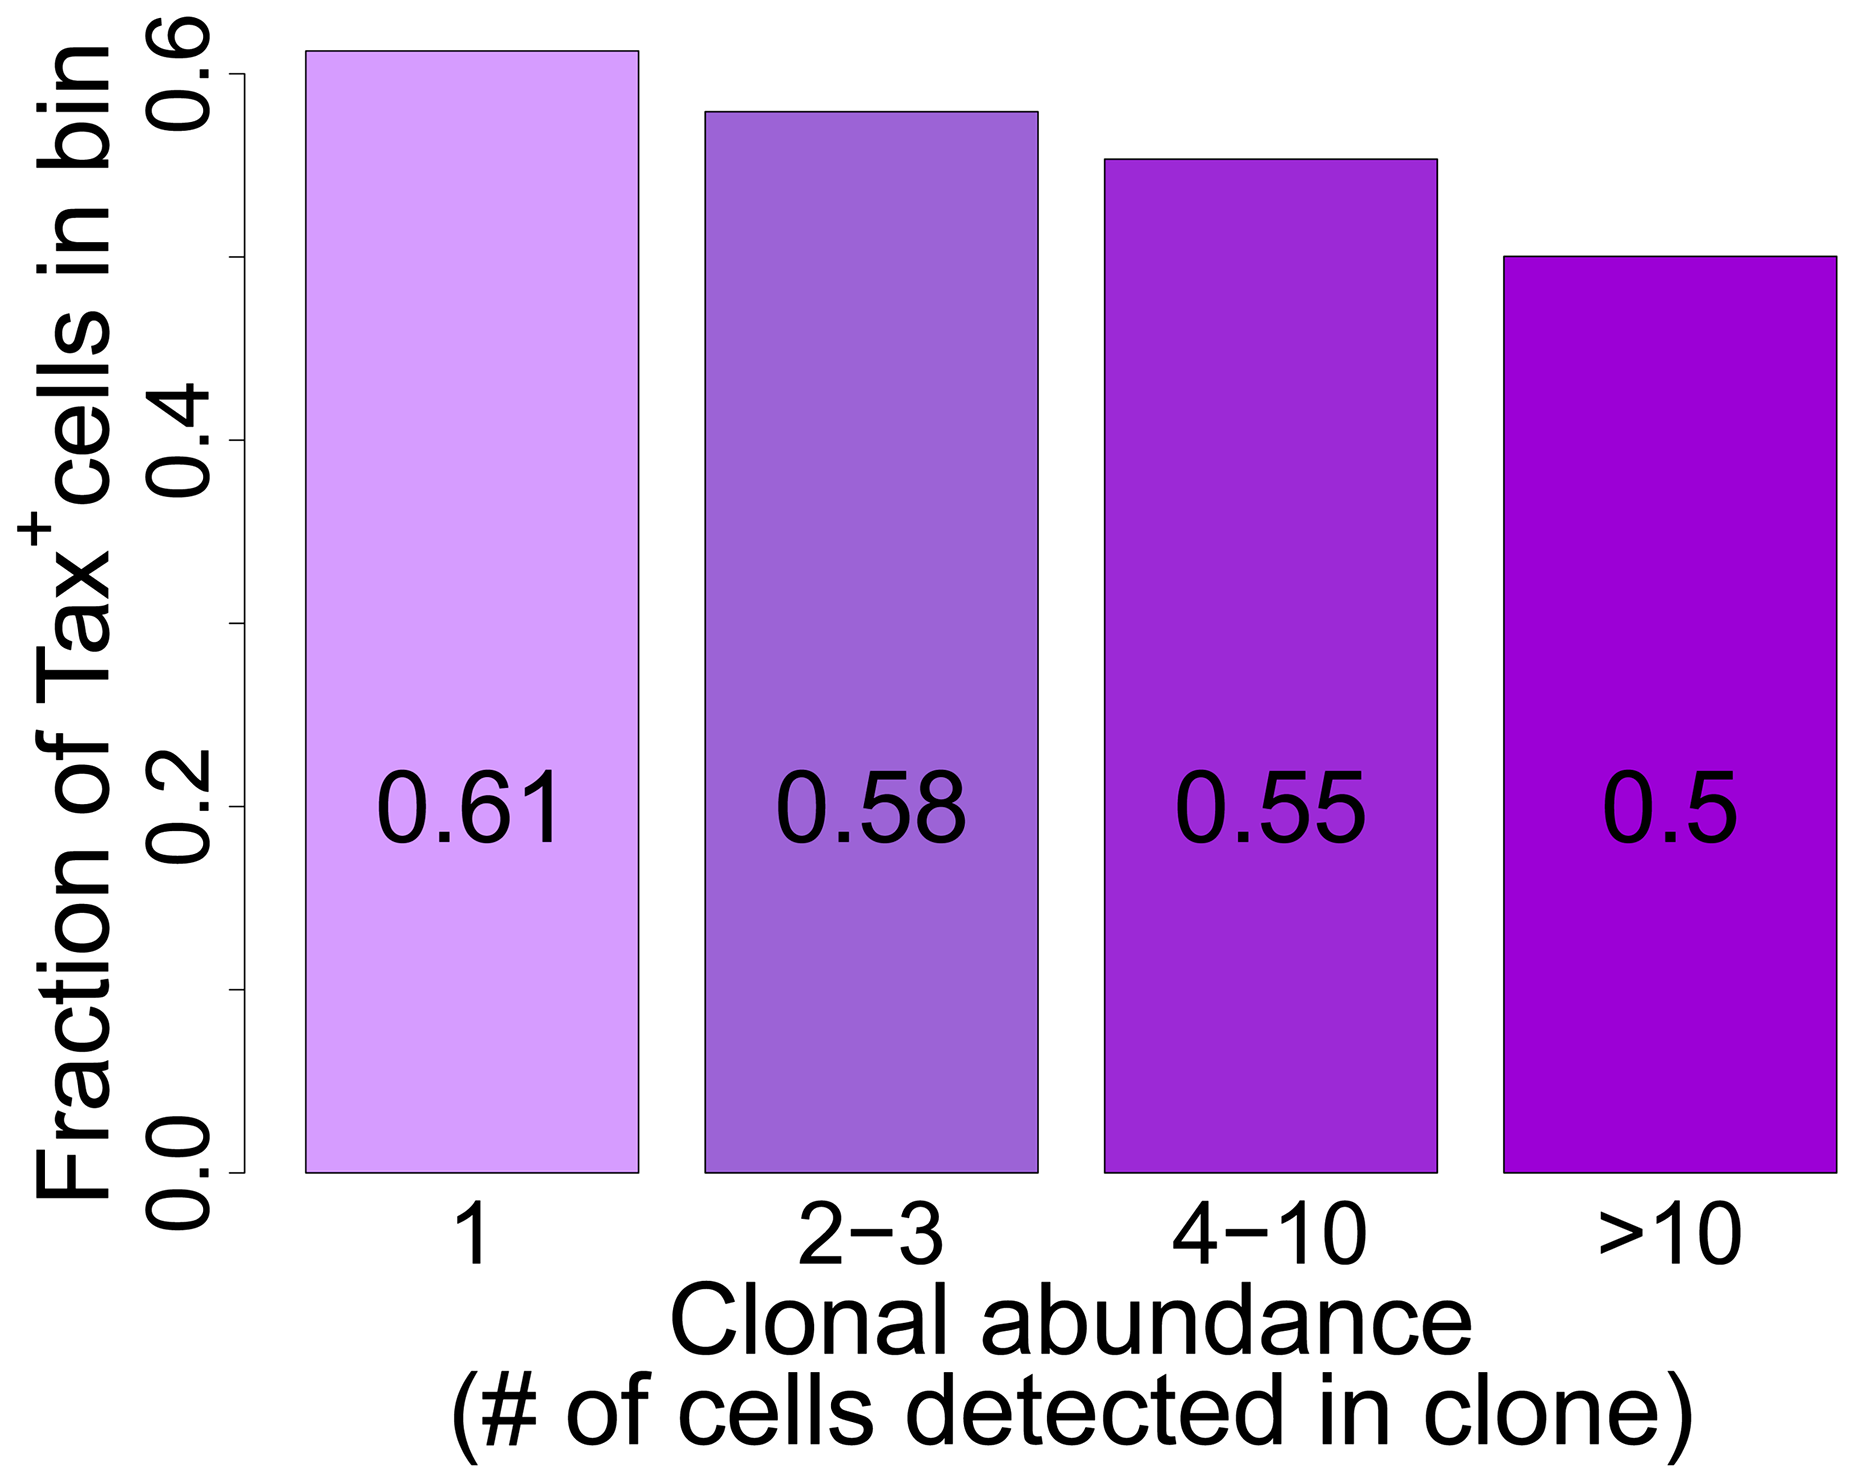 Tax<sup>+</sup> cells are more frequent in smaller clones.